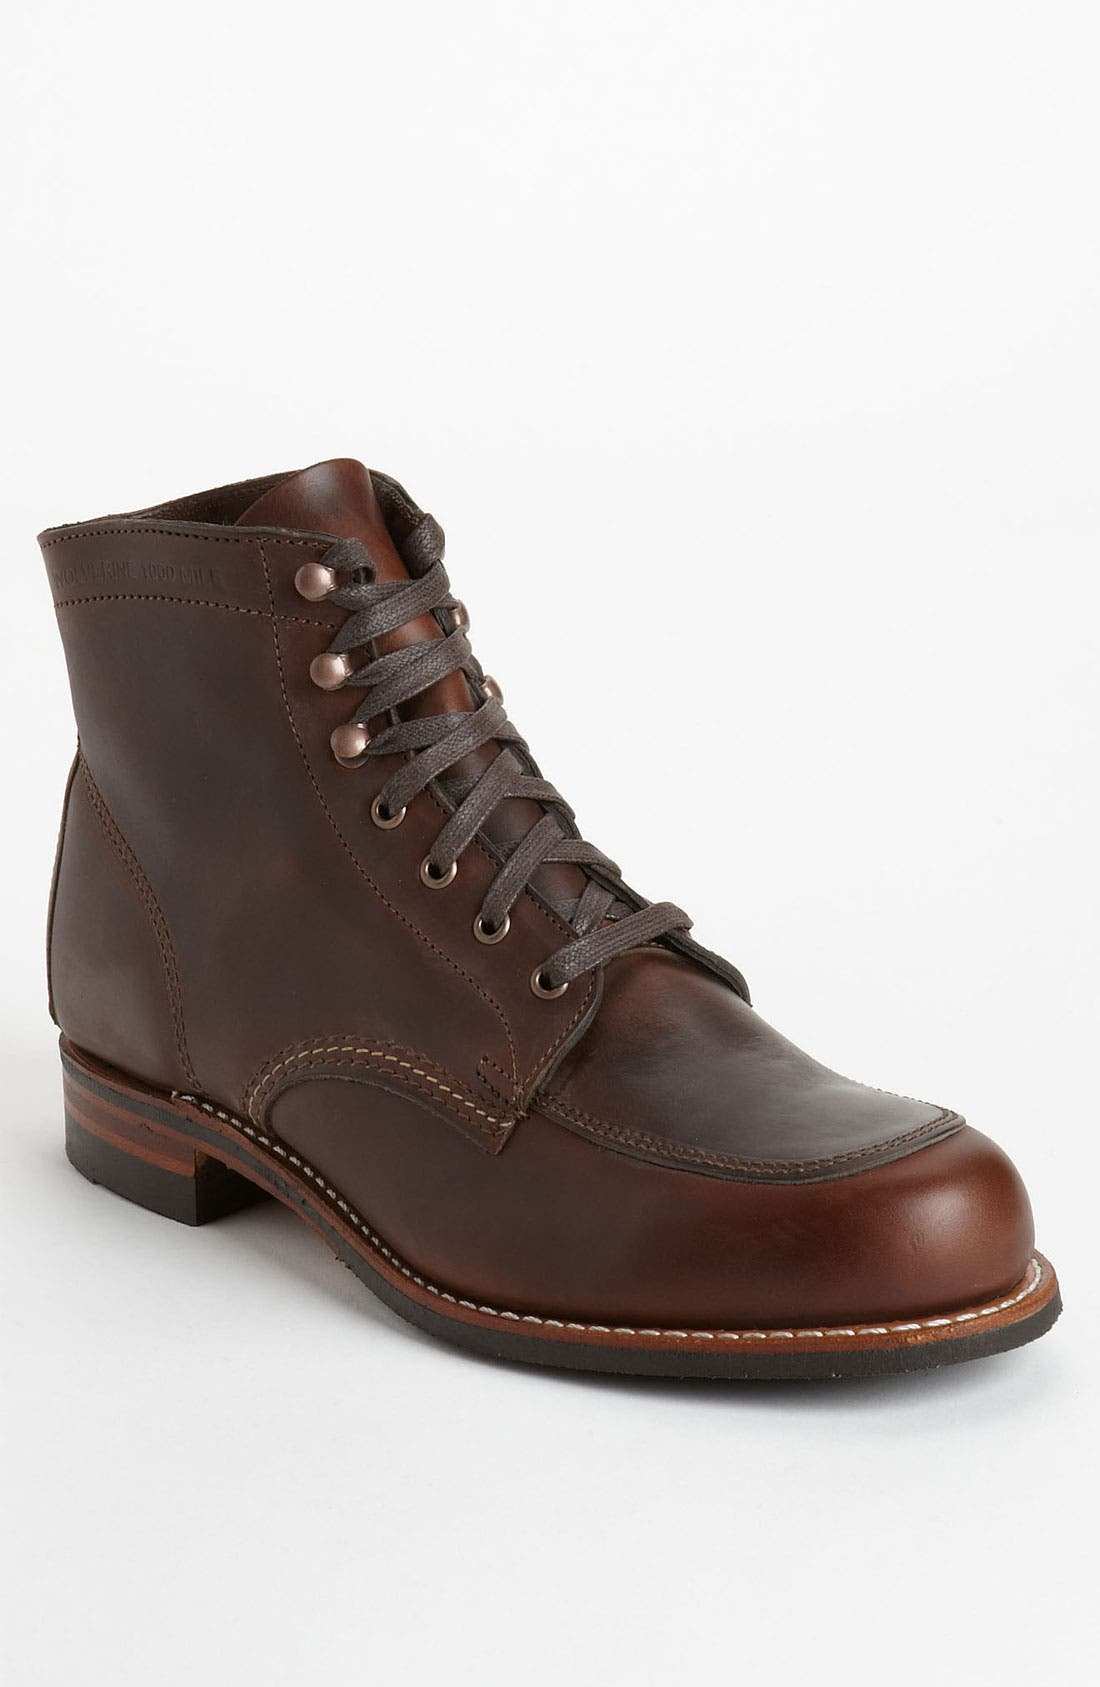 Alternate Image 1 Selected - Wolverine '1000 Mile - Courtland' Moc Toe Boot